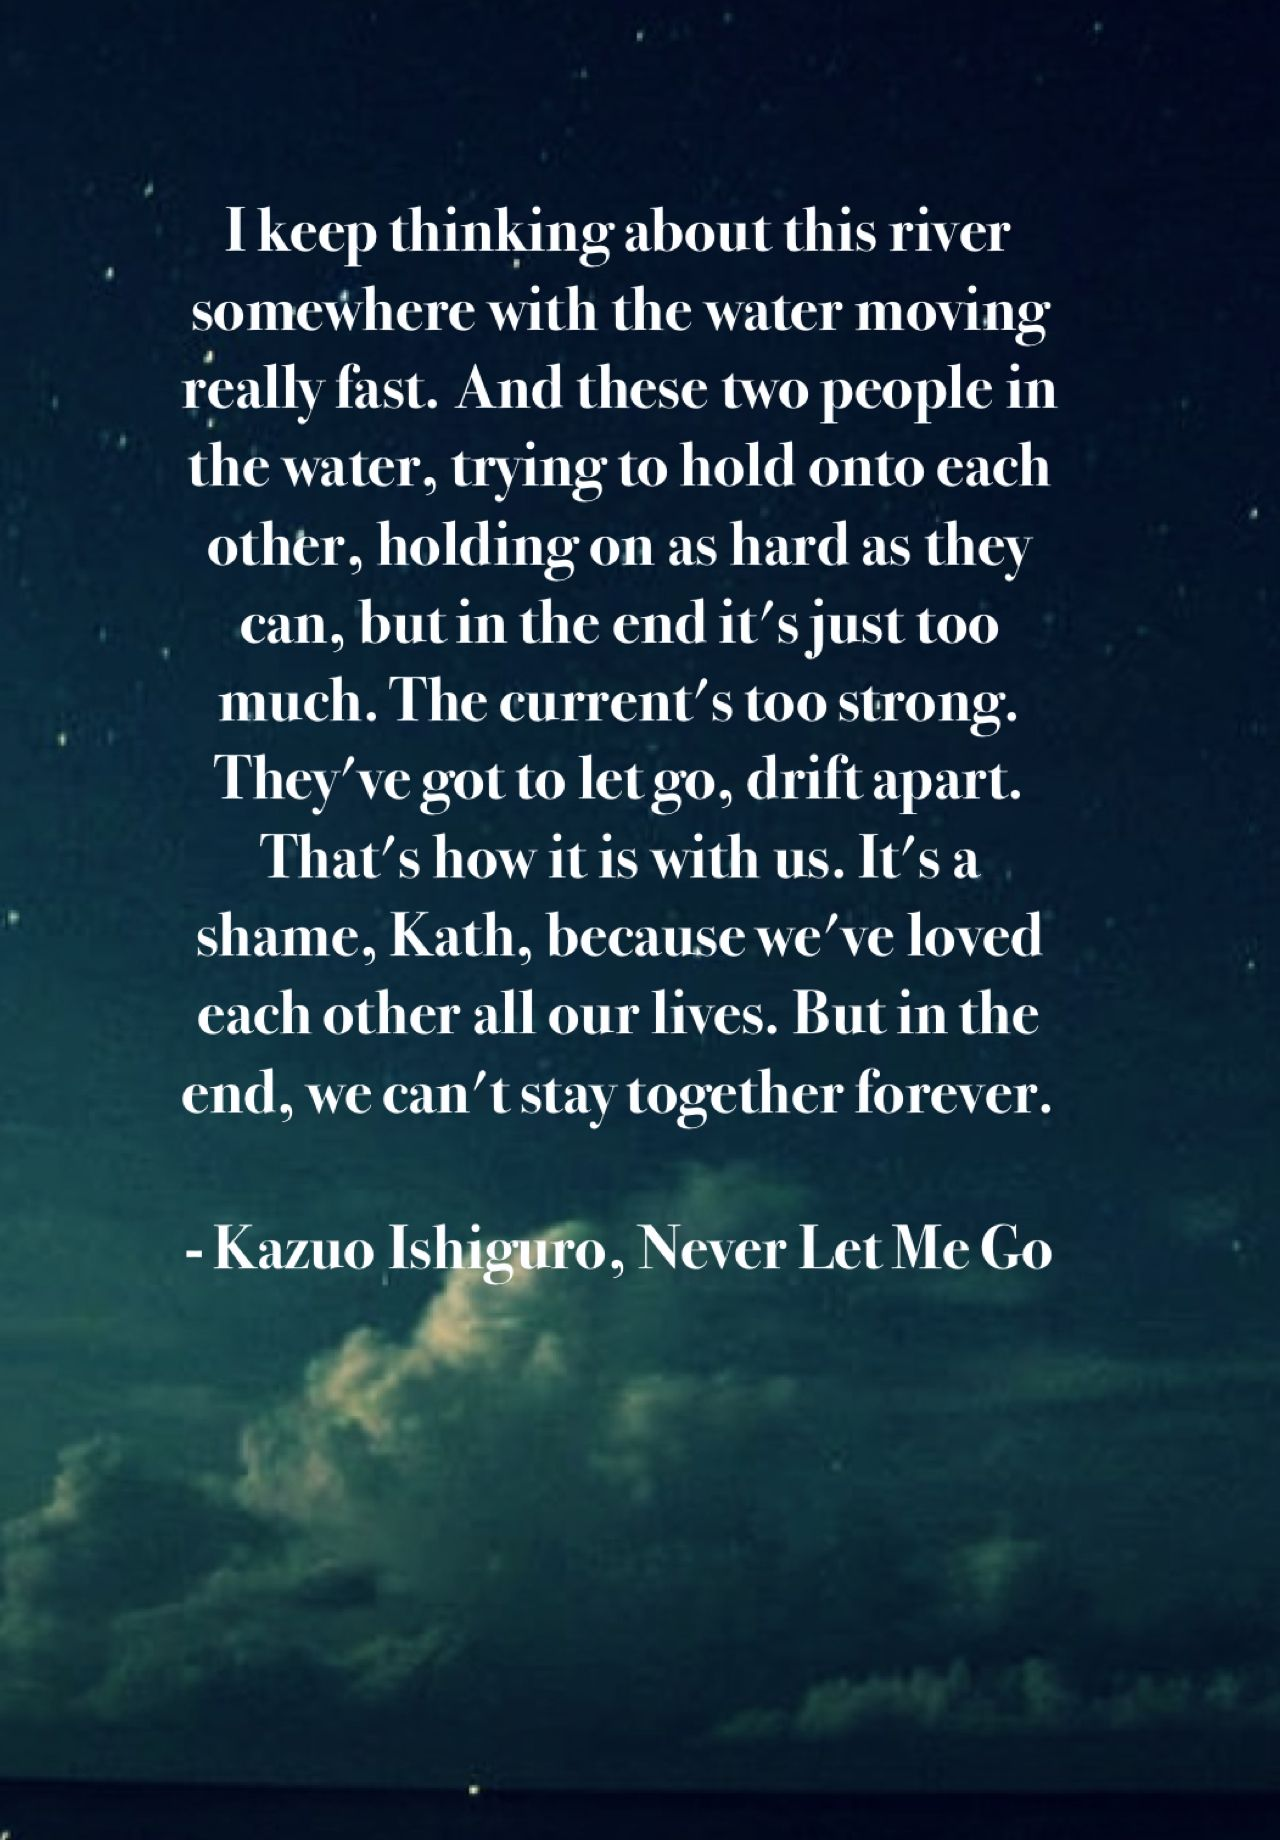 Never Let Me Go By Kazuo Ishiguro Is So Heartbreakingyou Will